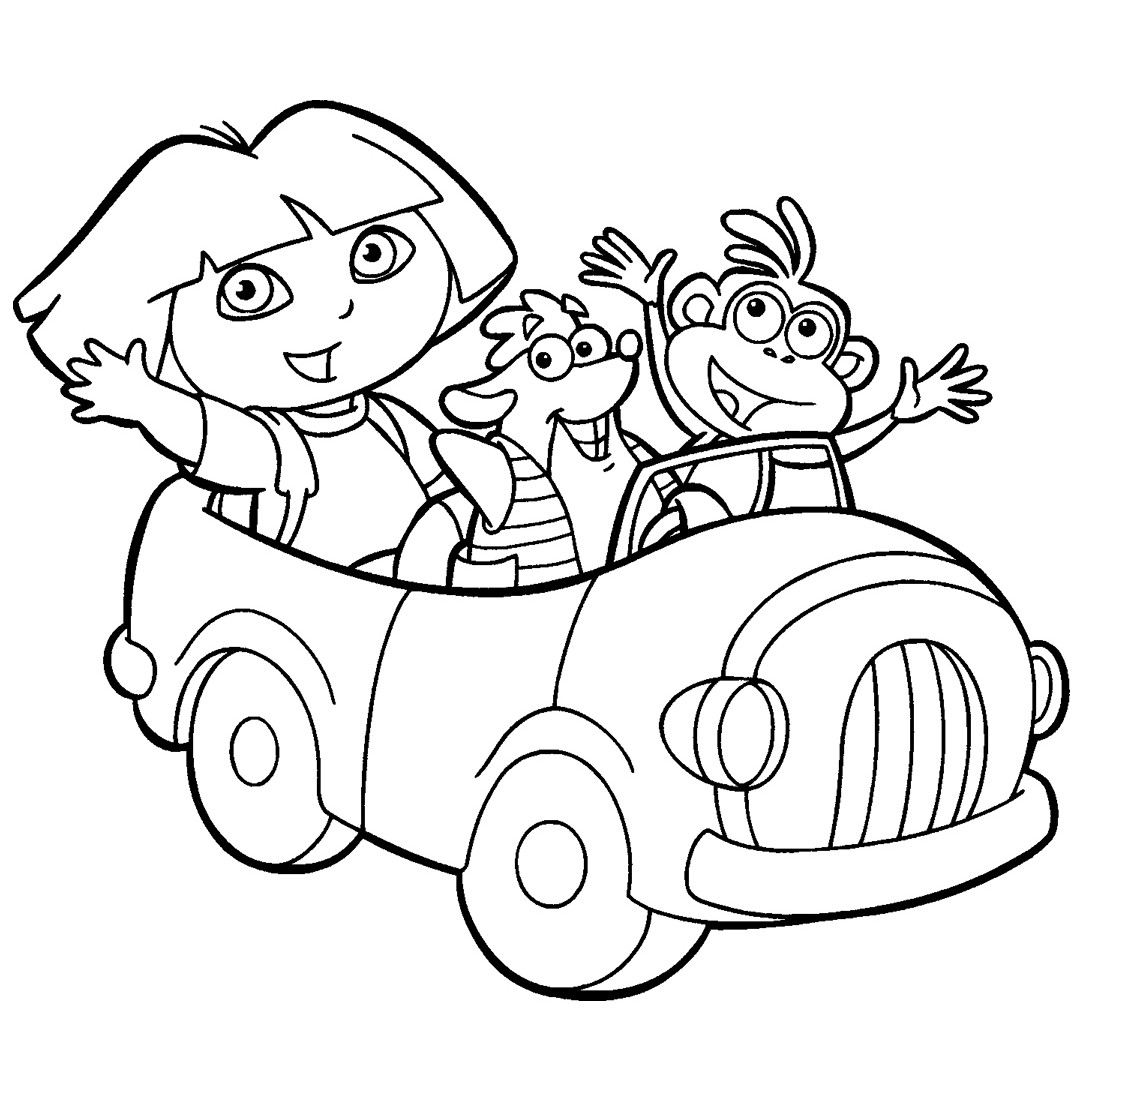 1139x1099 Craftoholic Dora The Explorer Coloring Pages